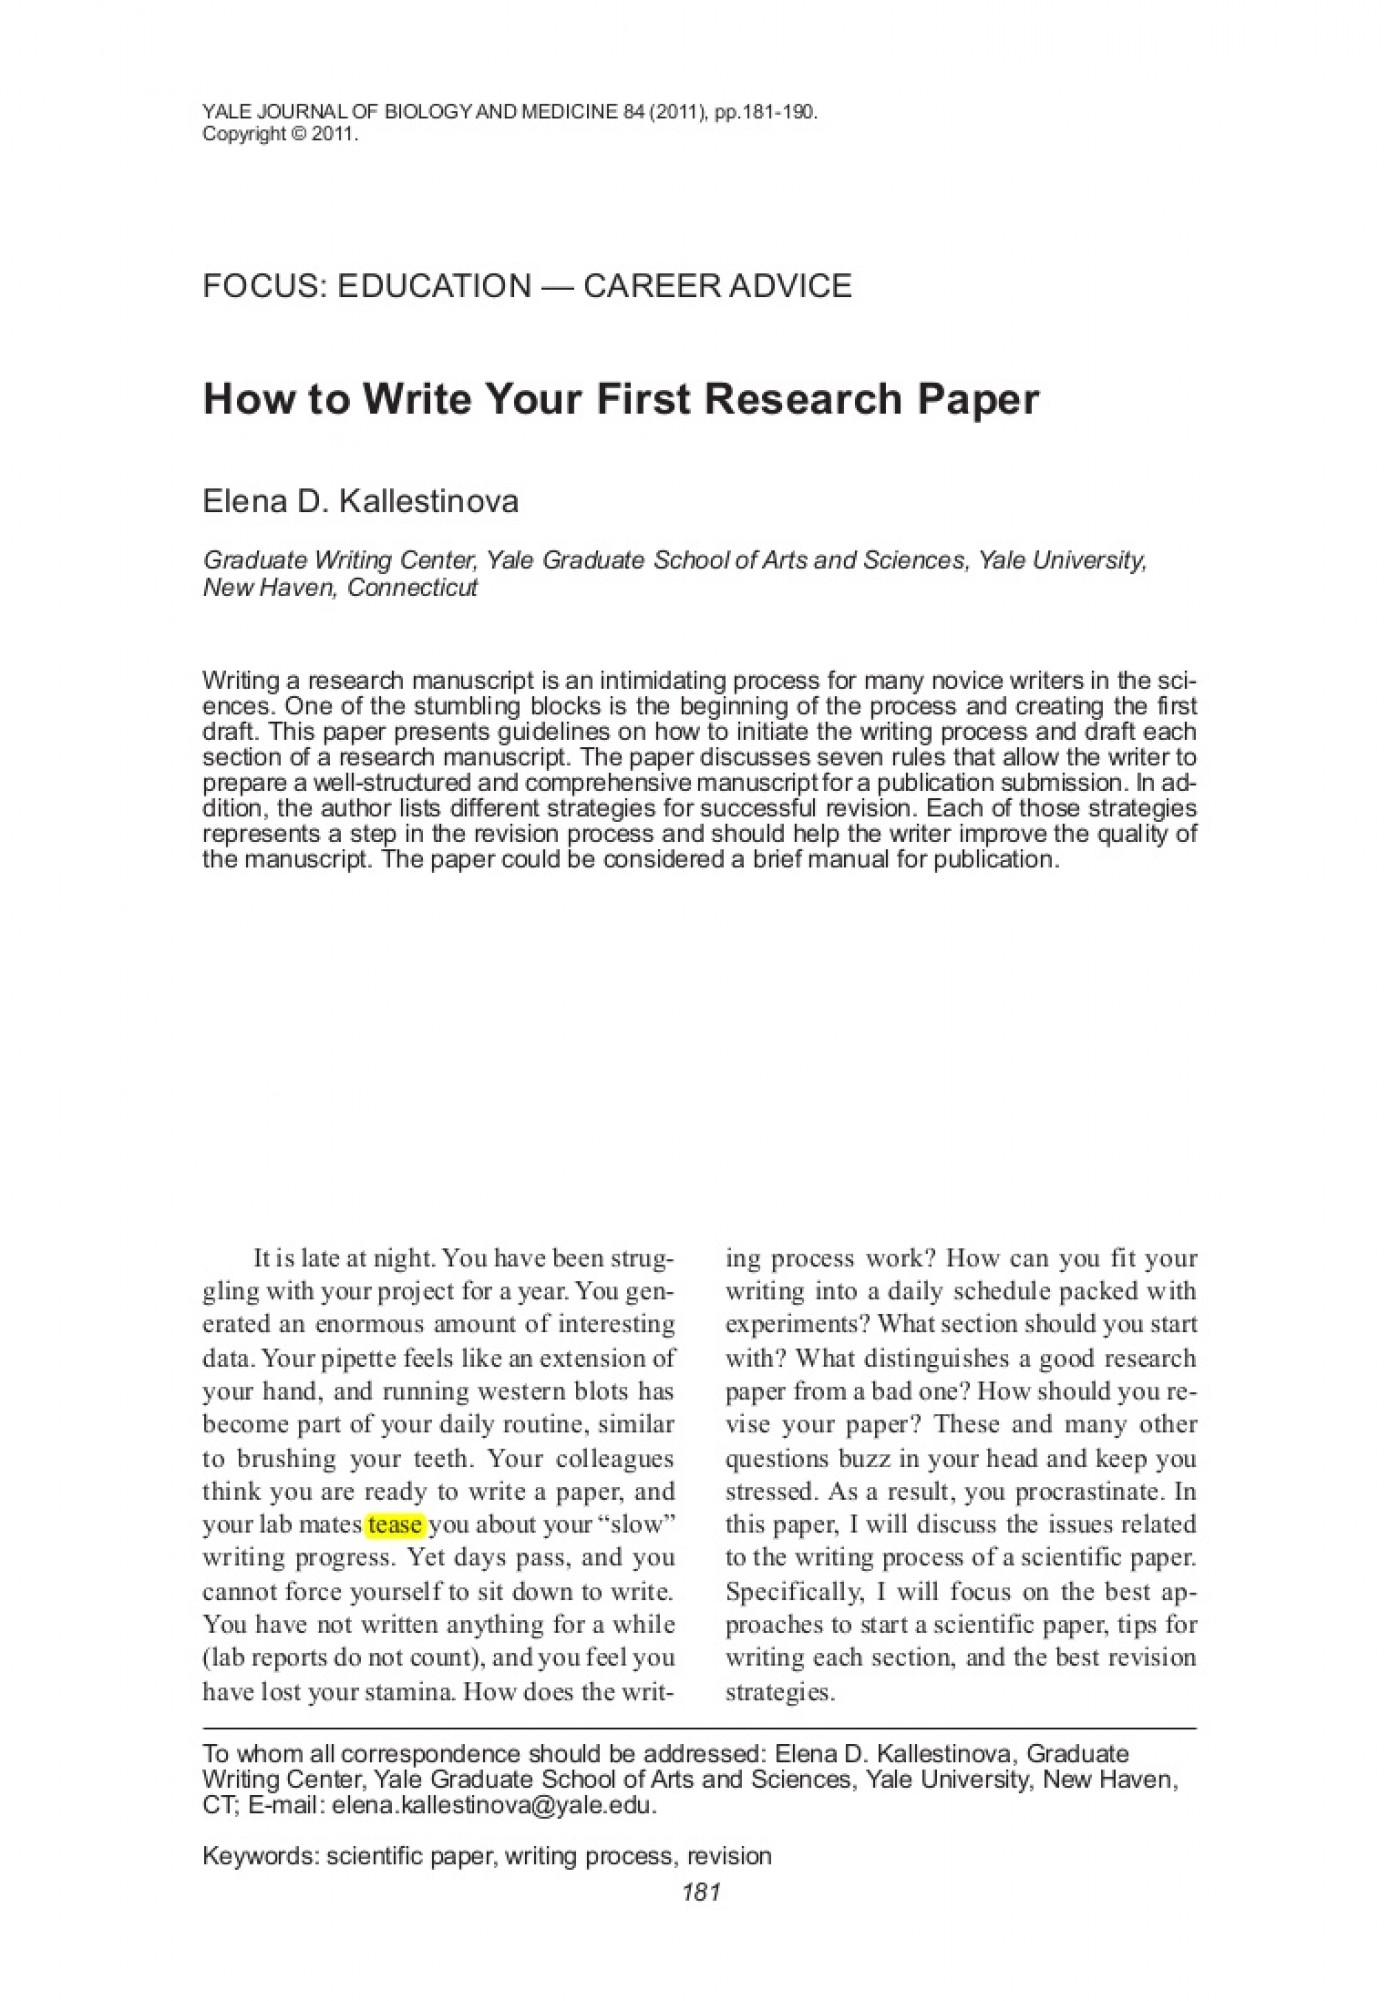 013 How To Write Research Papers Paper Howtowriteyourfirstresearchpaper Lva1 App6891 Thumbnail Best A - Pdf (2015) Conclusion An Introduction And 1400